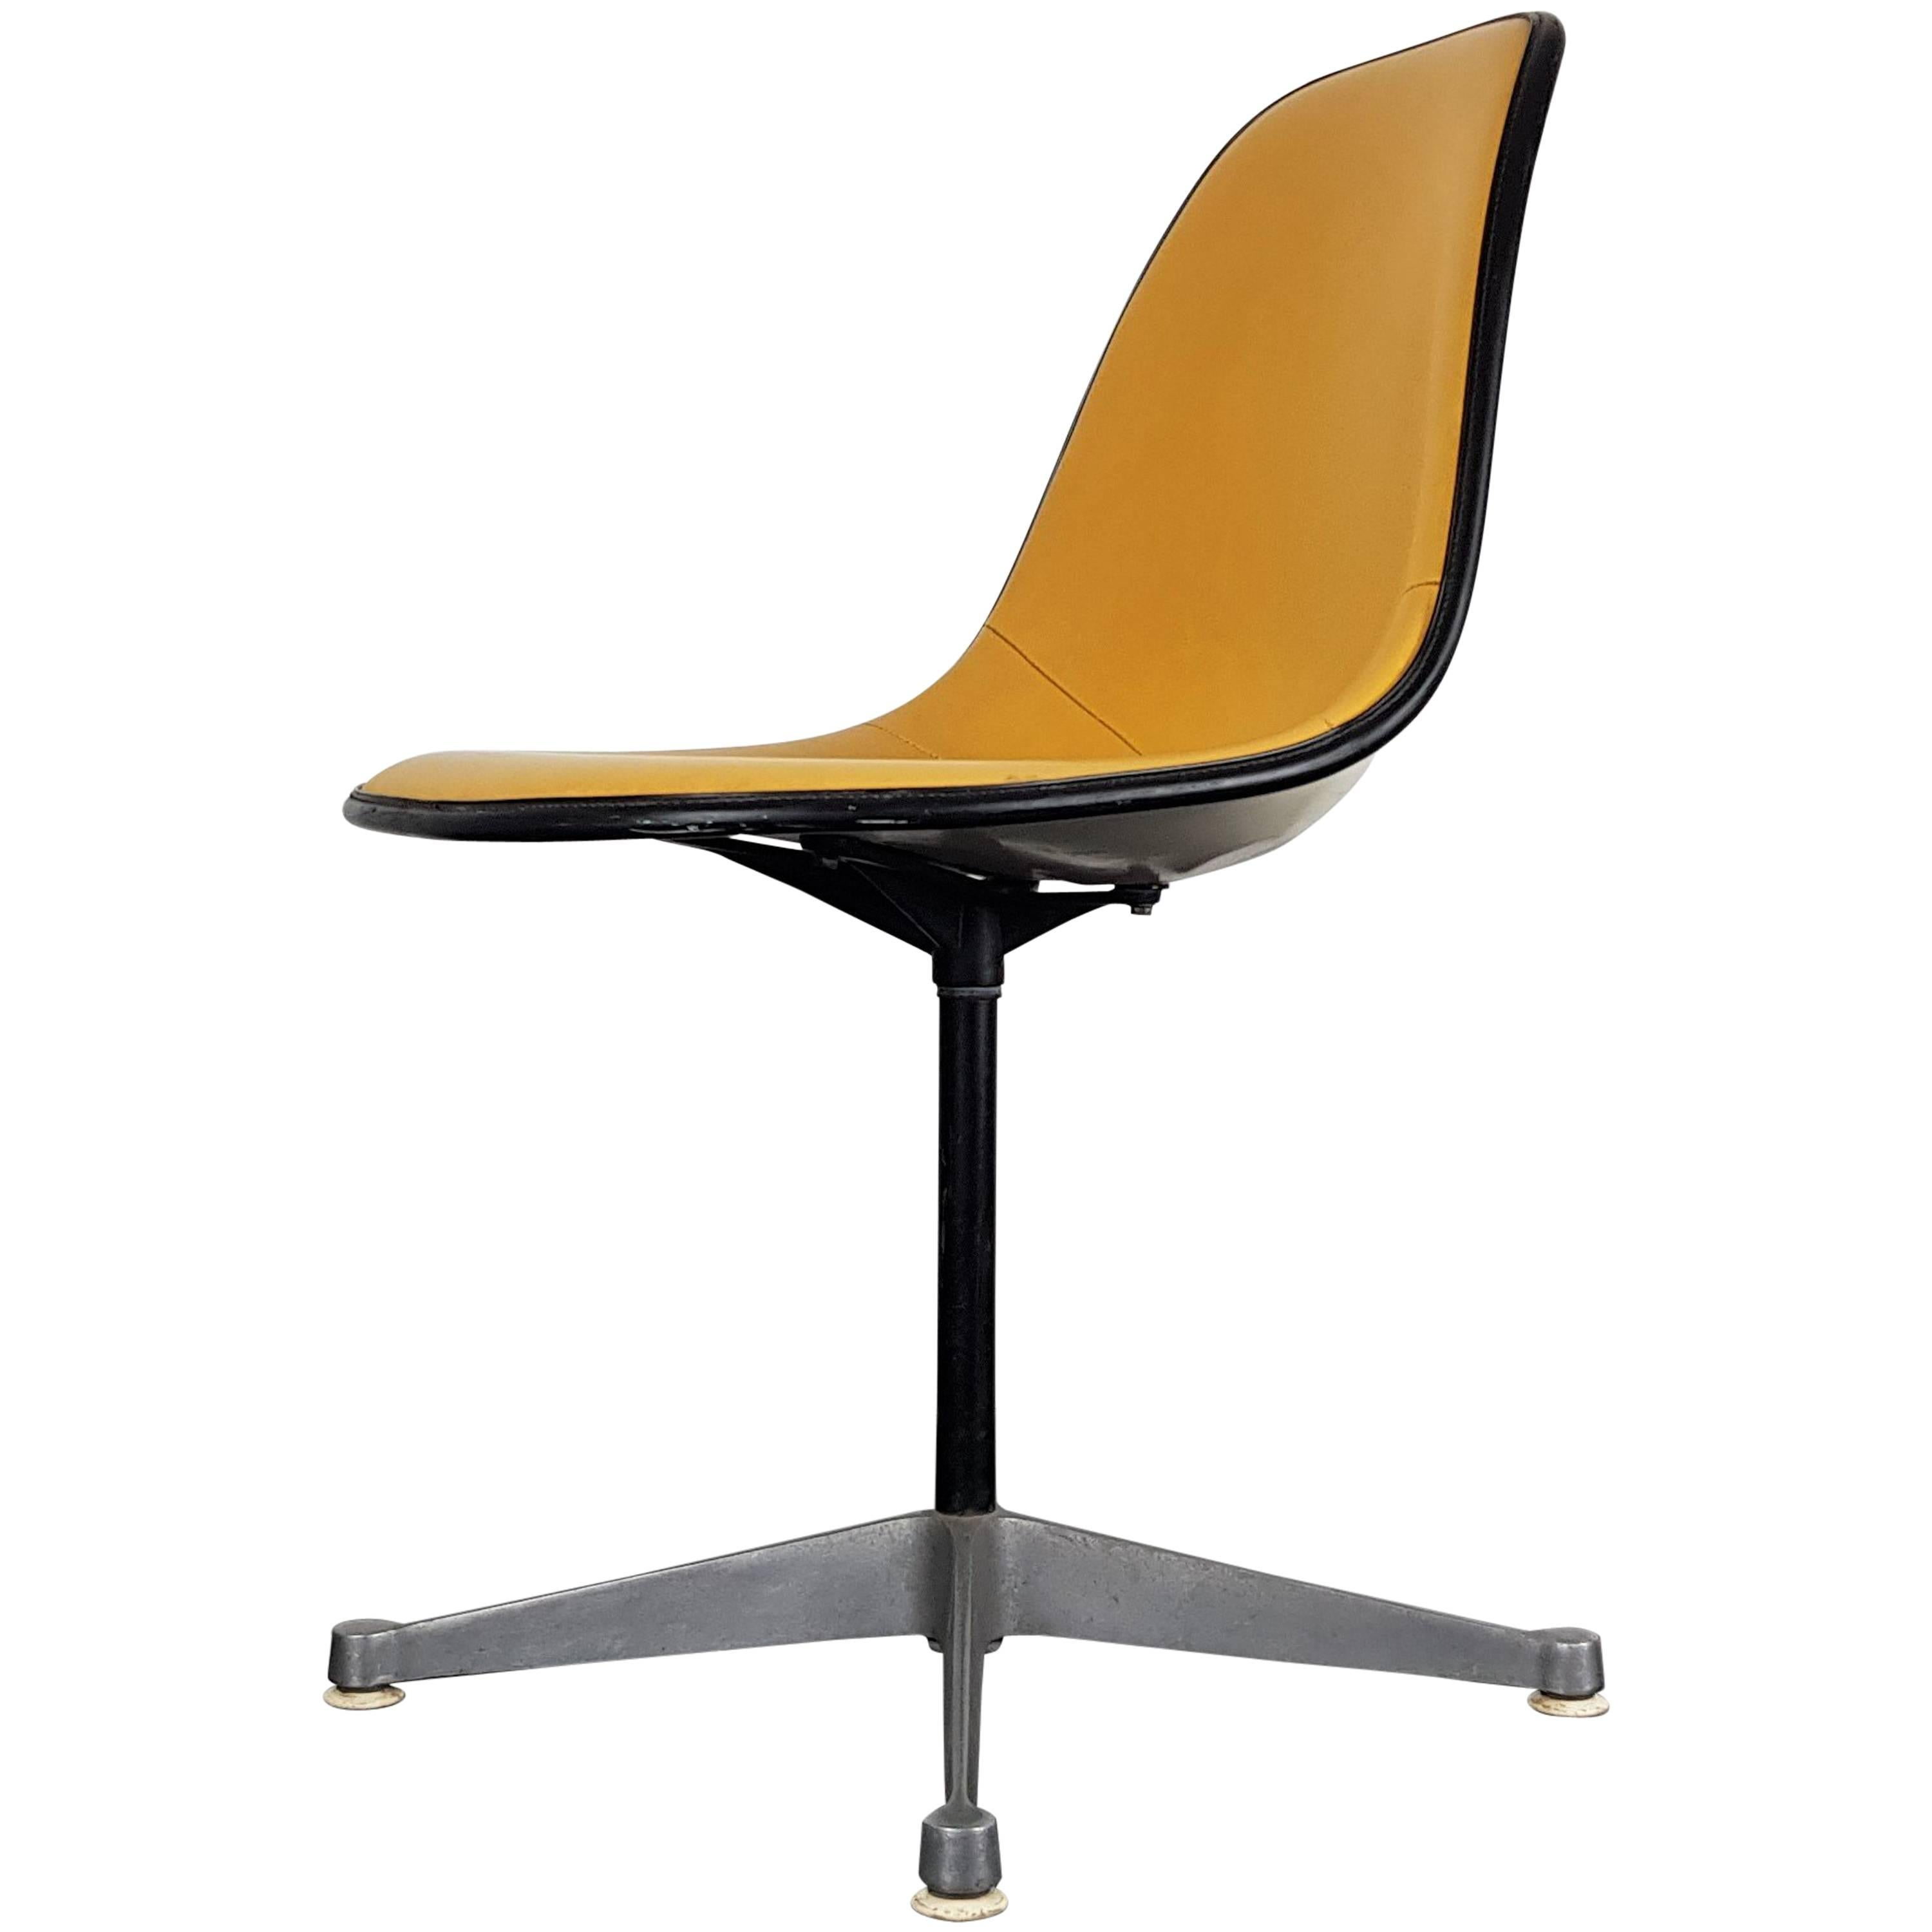 herman miller chairs vintage swivel desk without wheels vinyl upholstered eames chair on contractor base for sale